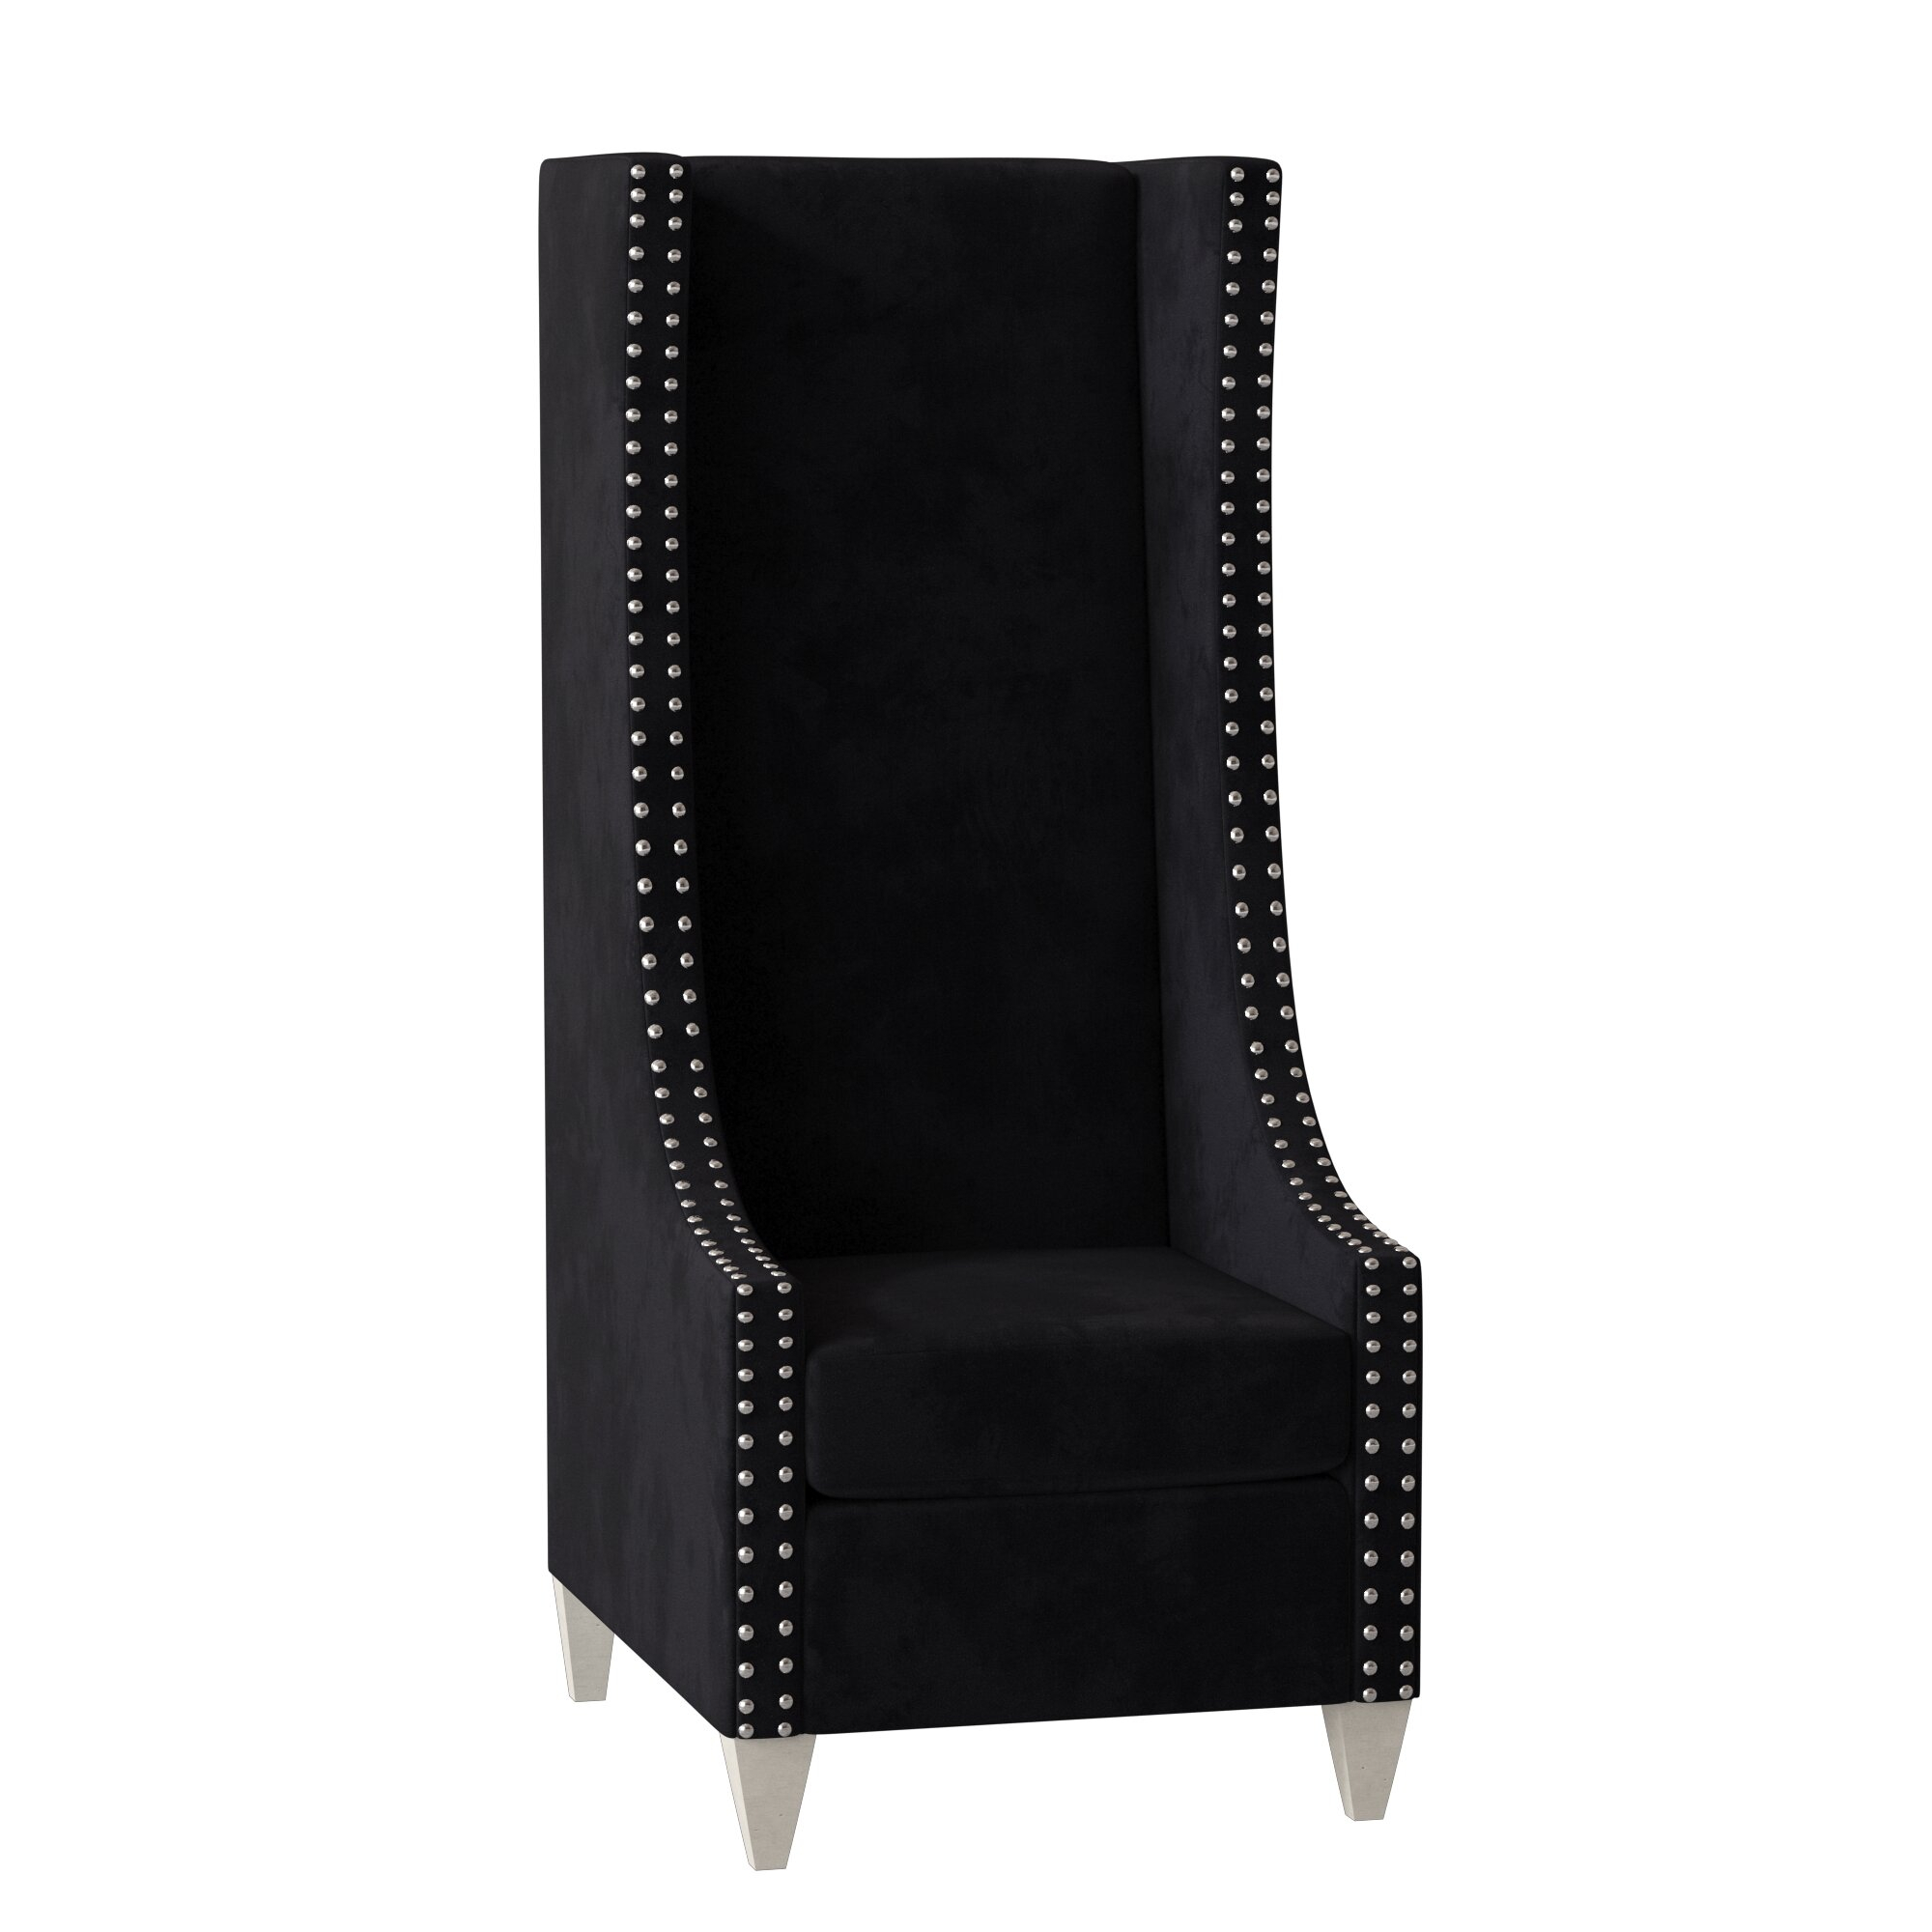 Chenille Wingback Accent Chairs You'Ll Love In 2021 | Wayfair In Saige Wingback Chairs (View 5 of 15)